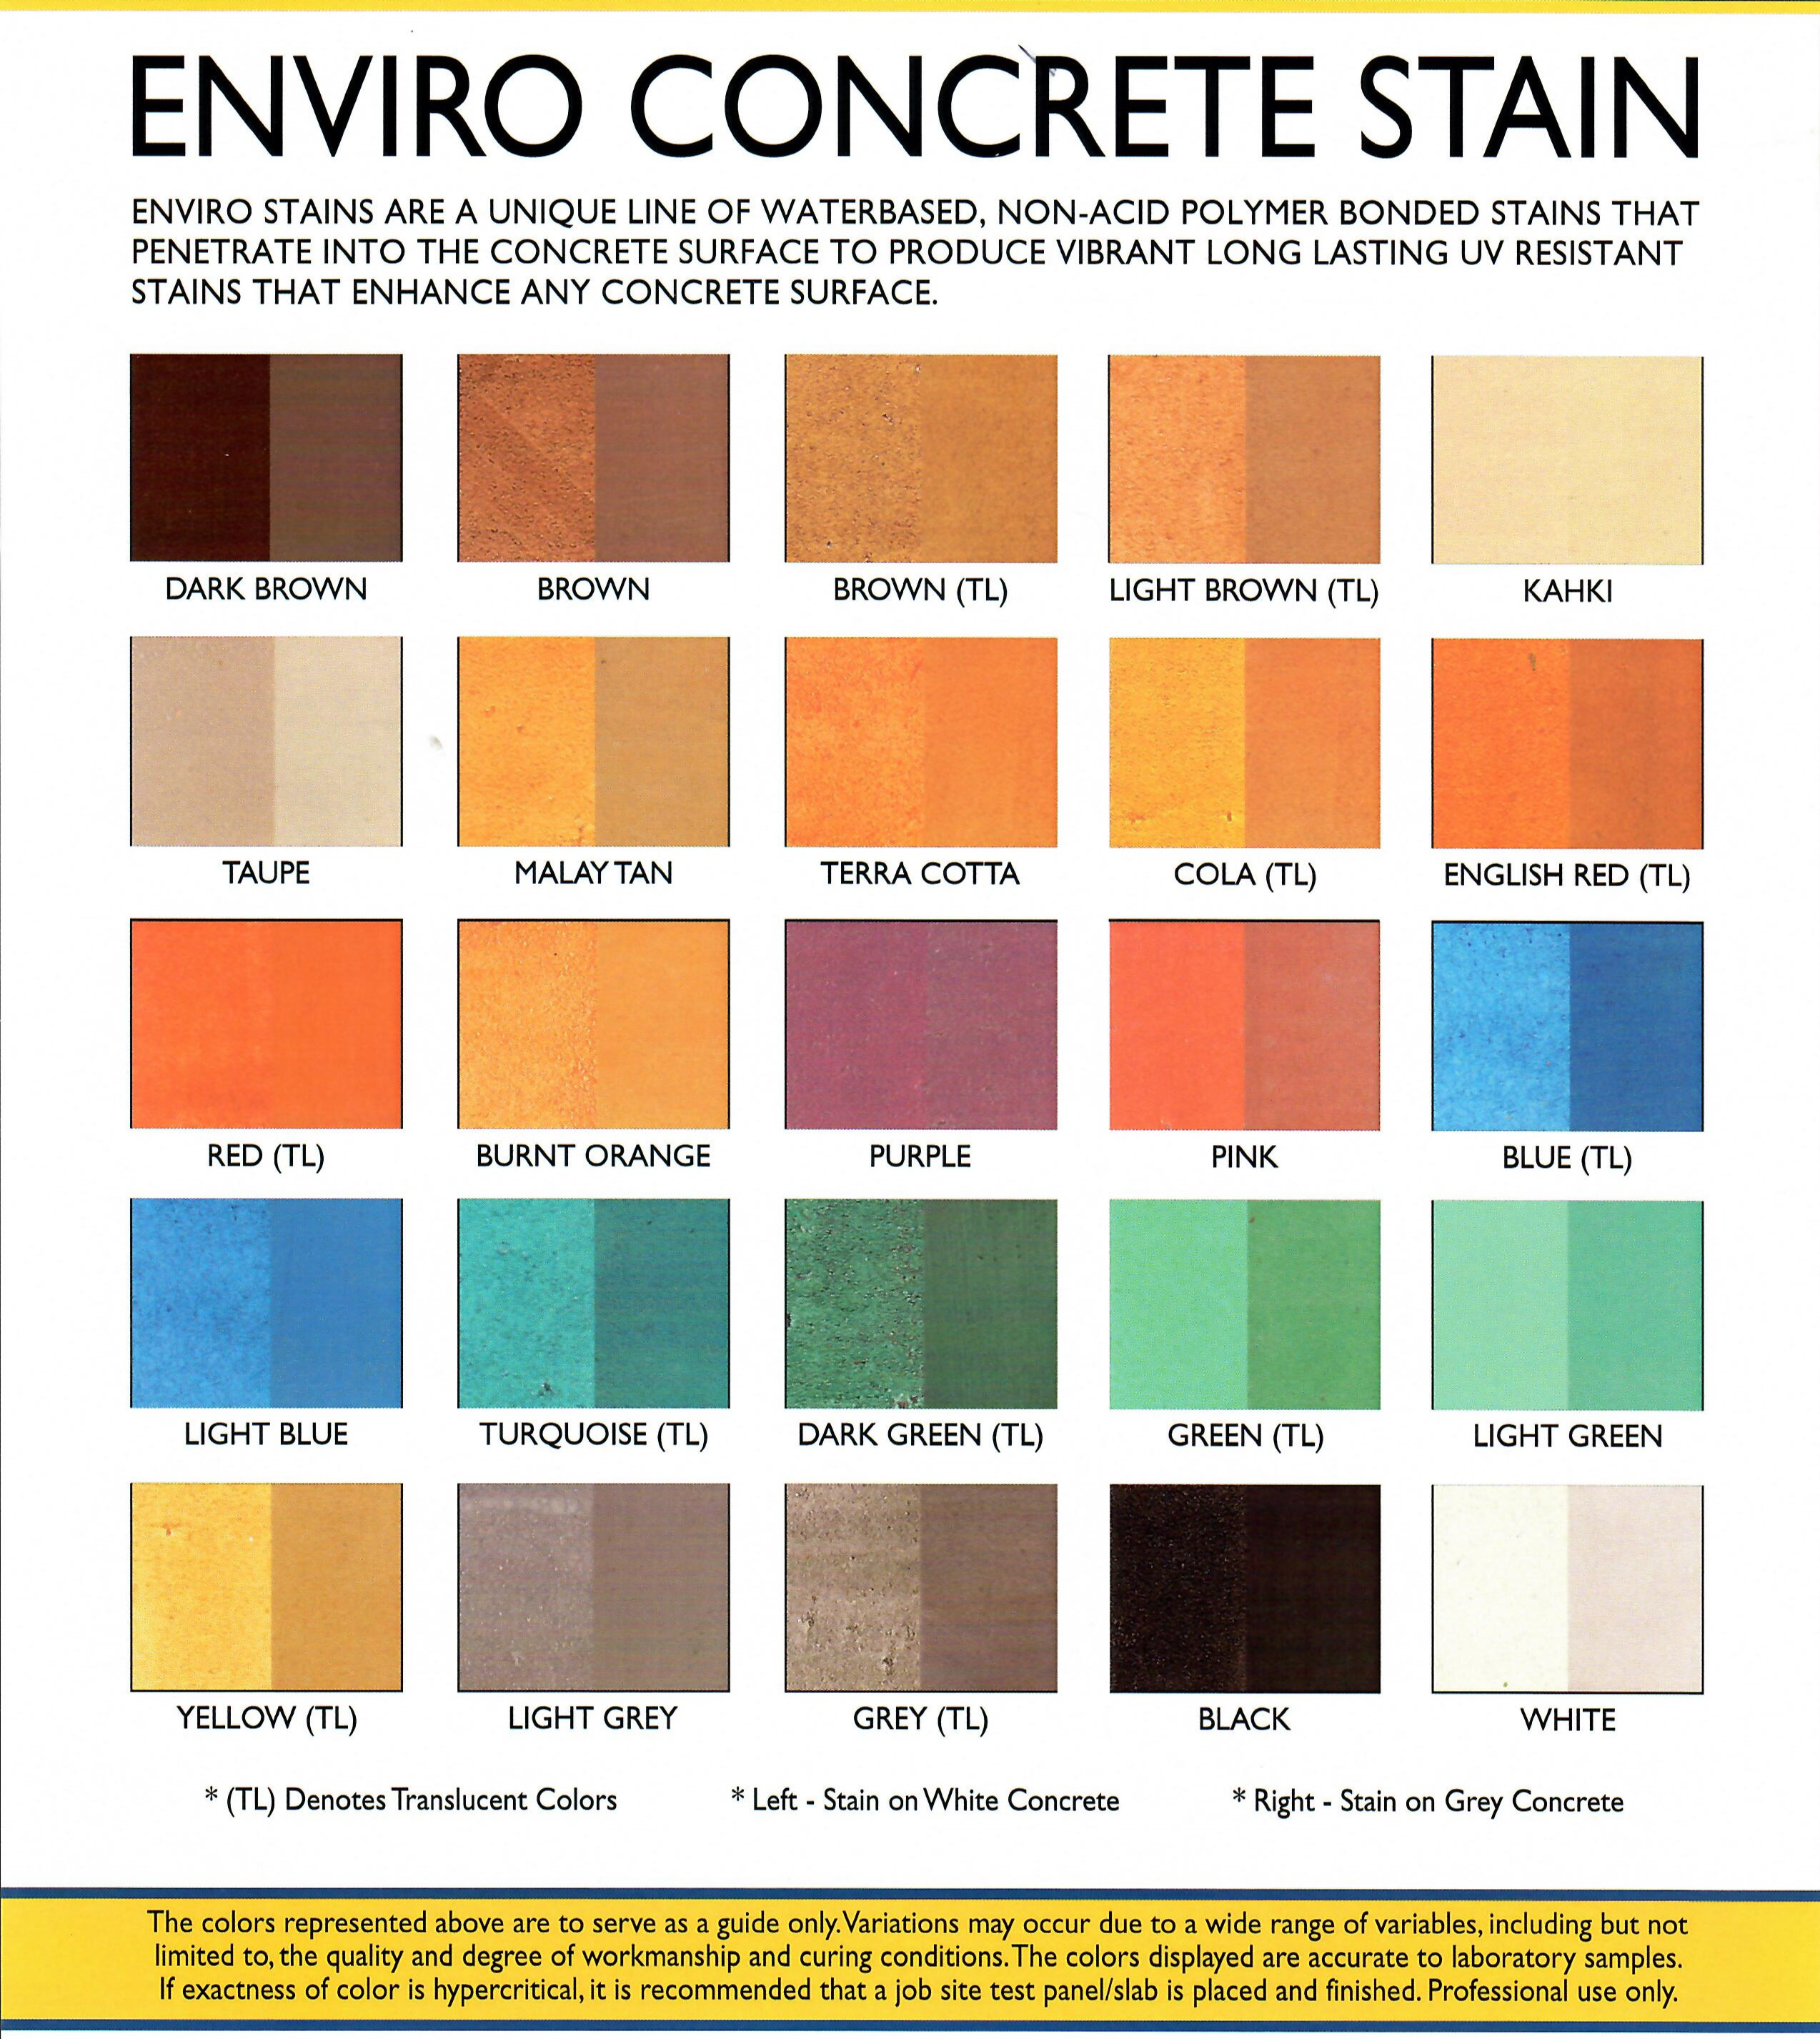 Njv decorative concrete supply enviro stains are a unique line of waterbased non acid polymer bonded stains that penetrate into the concrete surface to produce vibrant long lasting uv nvjuhfo Image collections